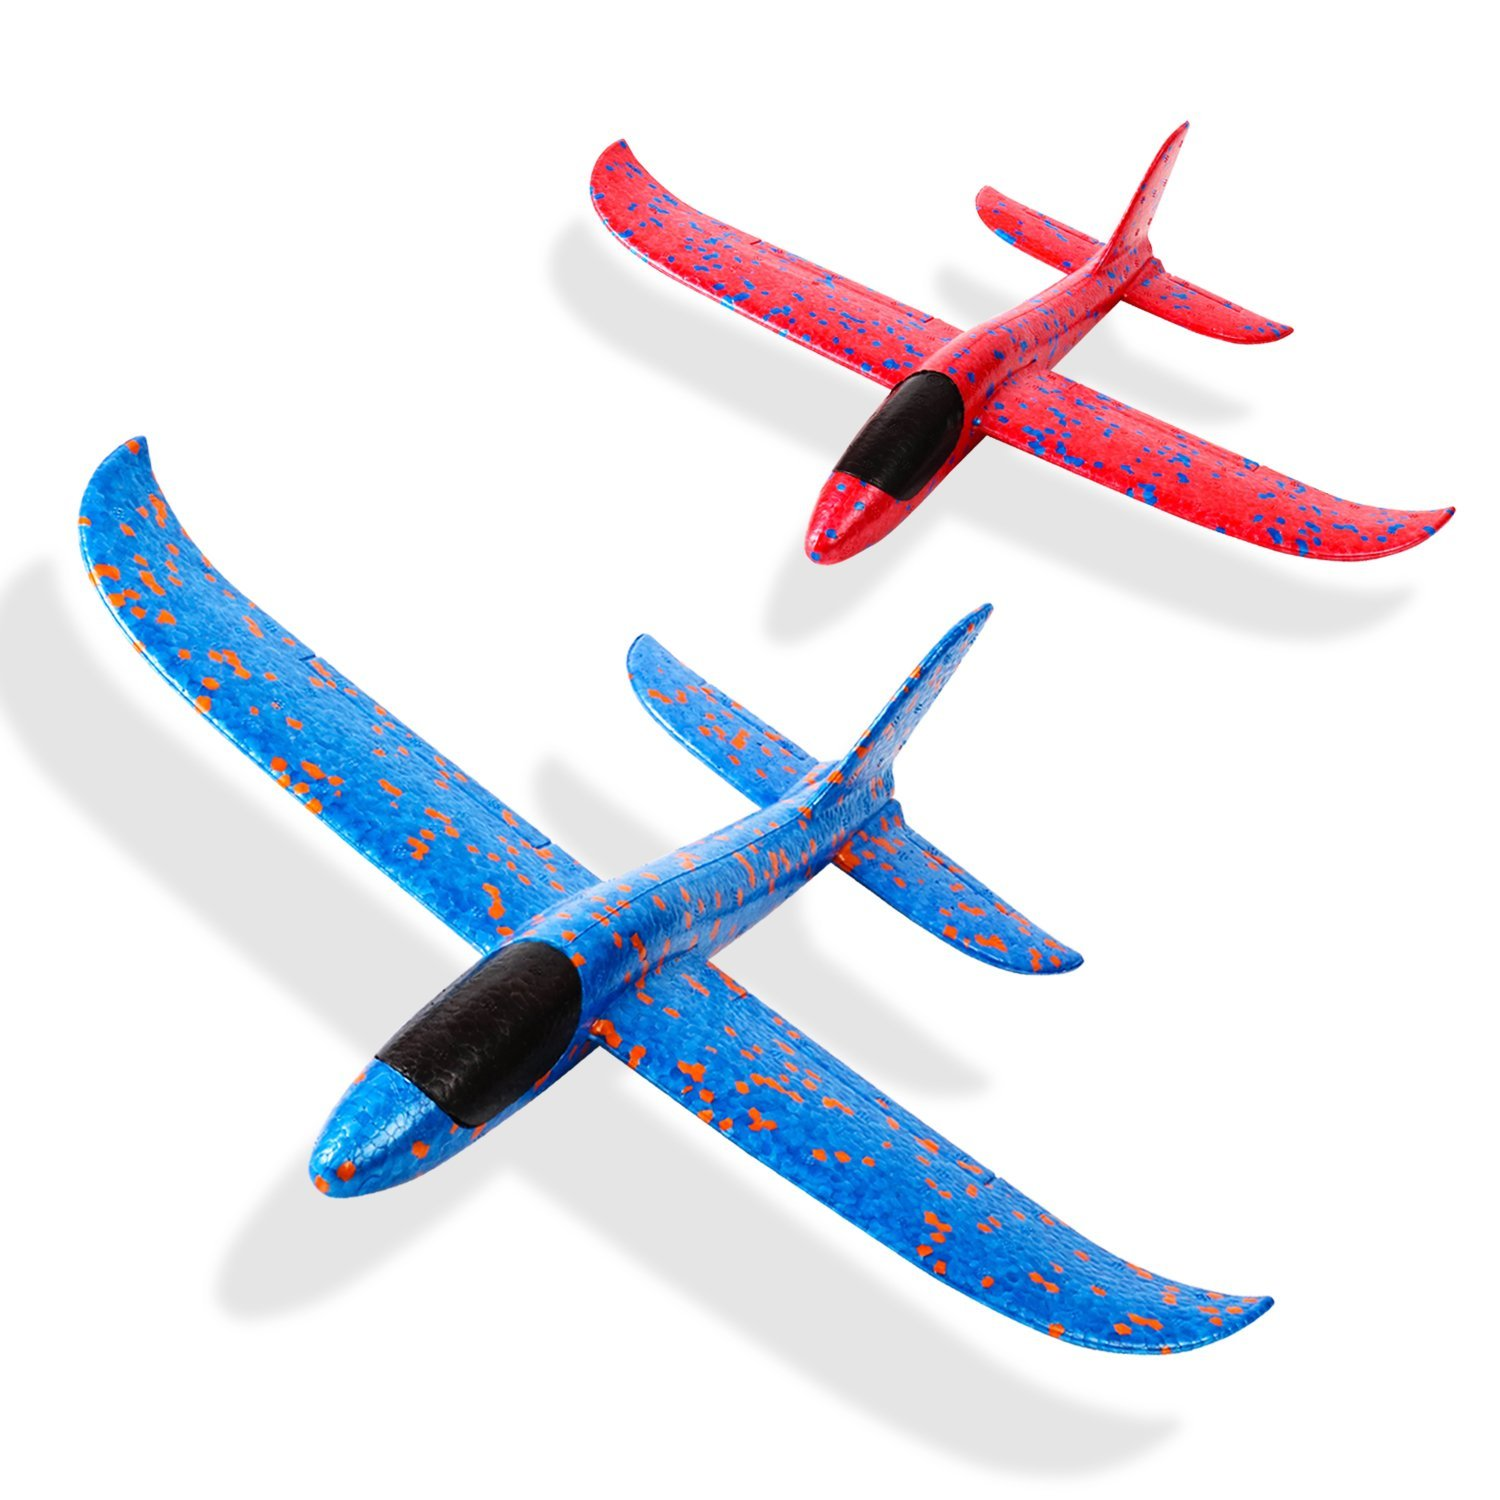 Flying Toys For Boys : Best rated in flying toys helpful customer reviews